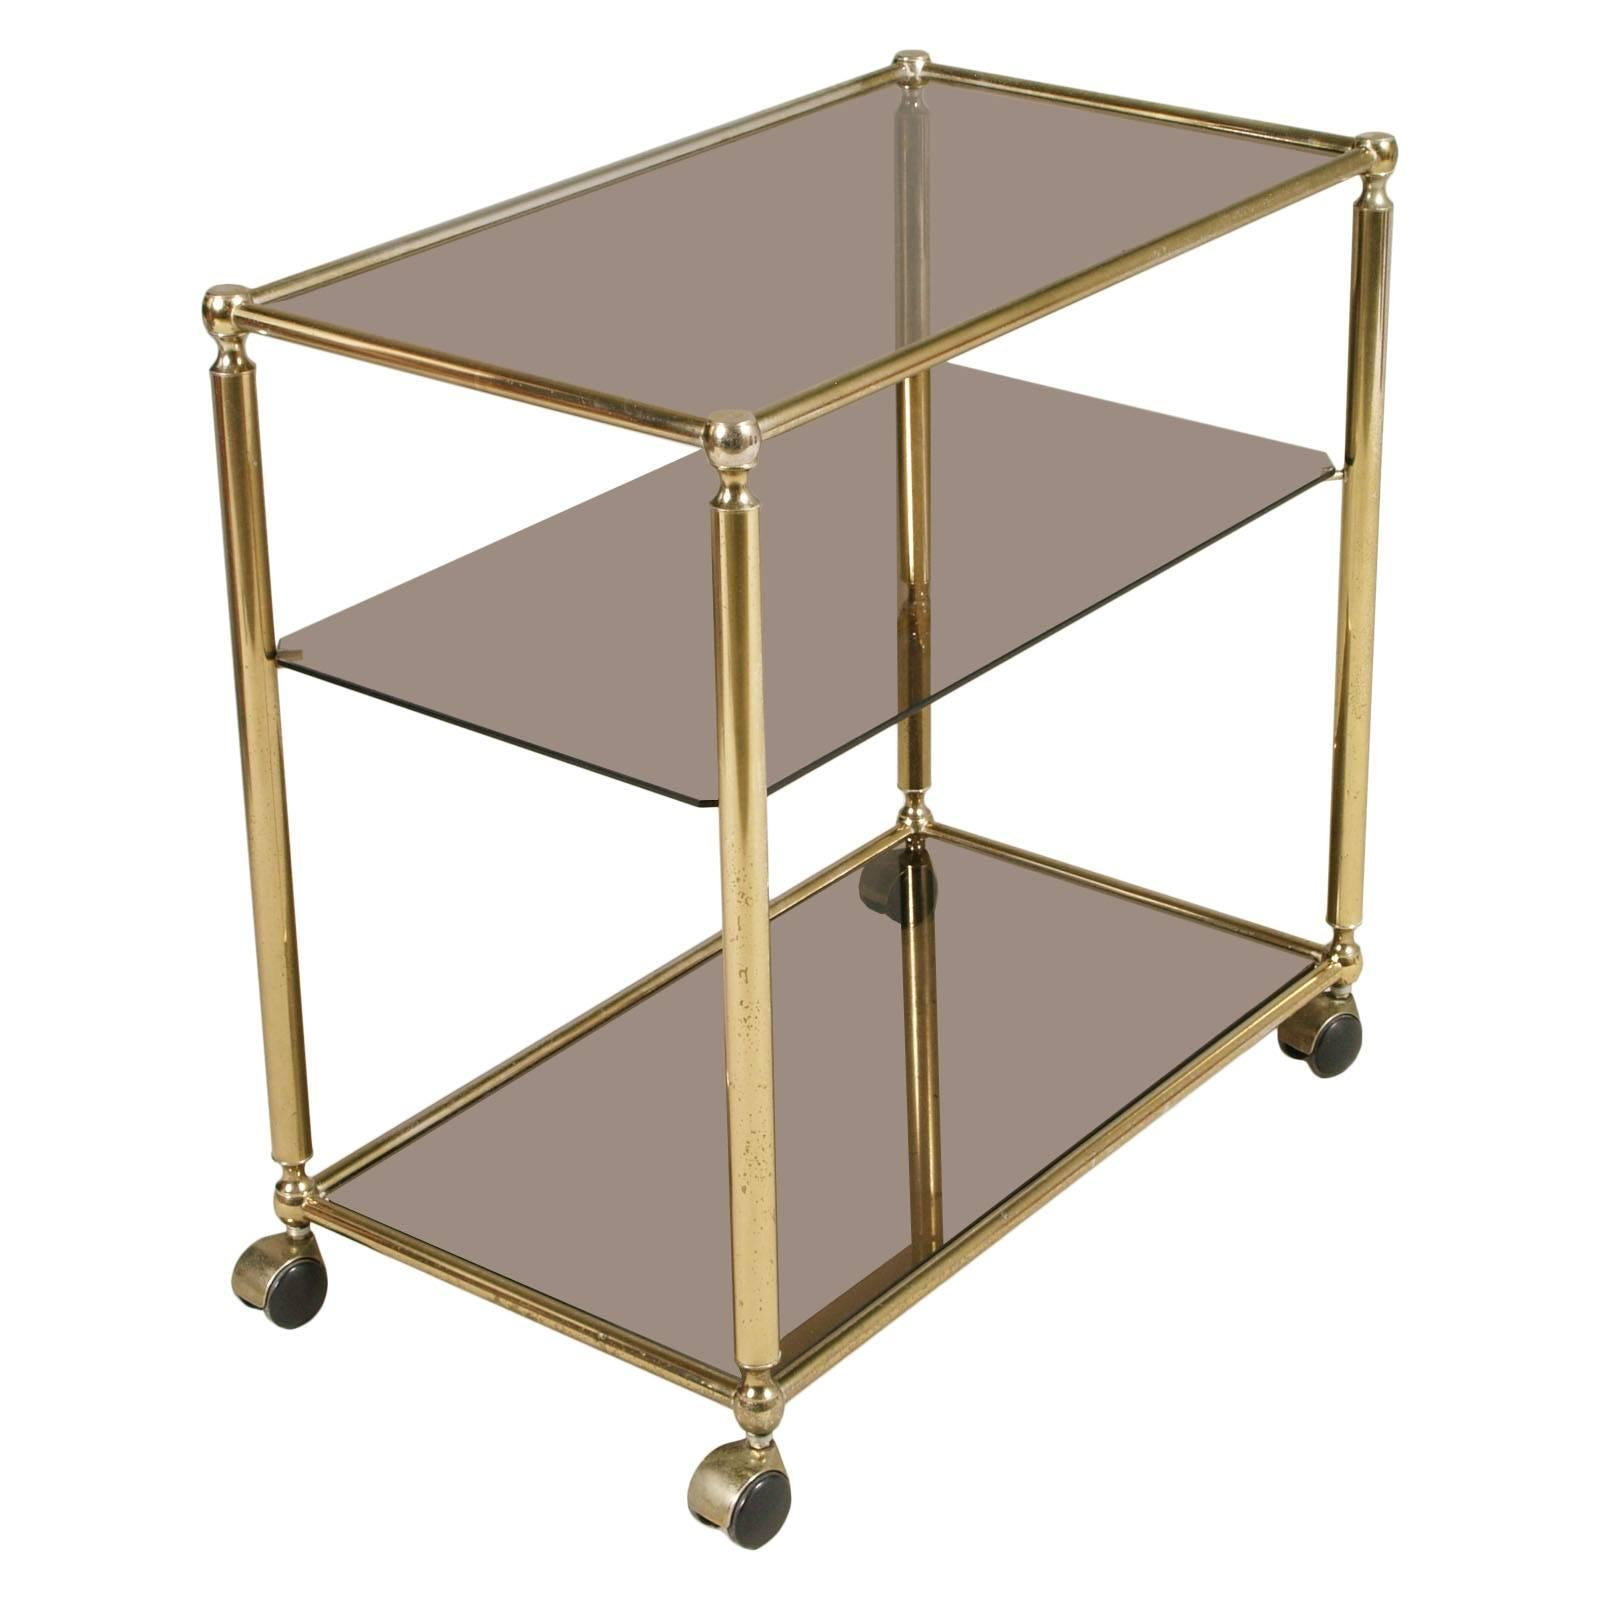 Mid century modern bar cart in brass with three shelves in crystal fumè for sale at 1stdibs